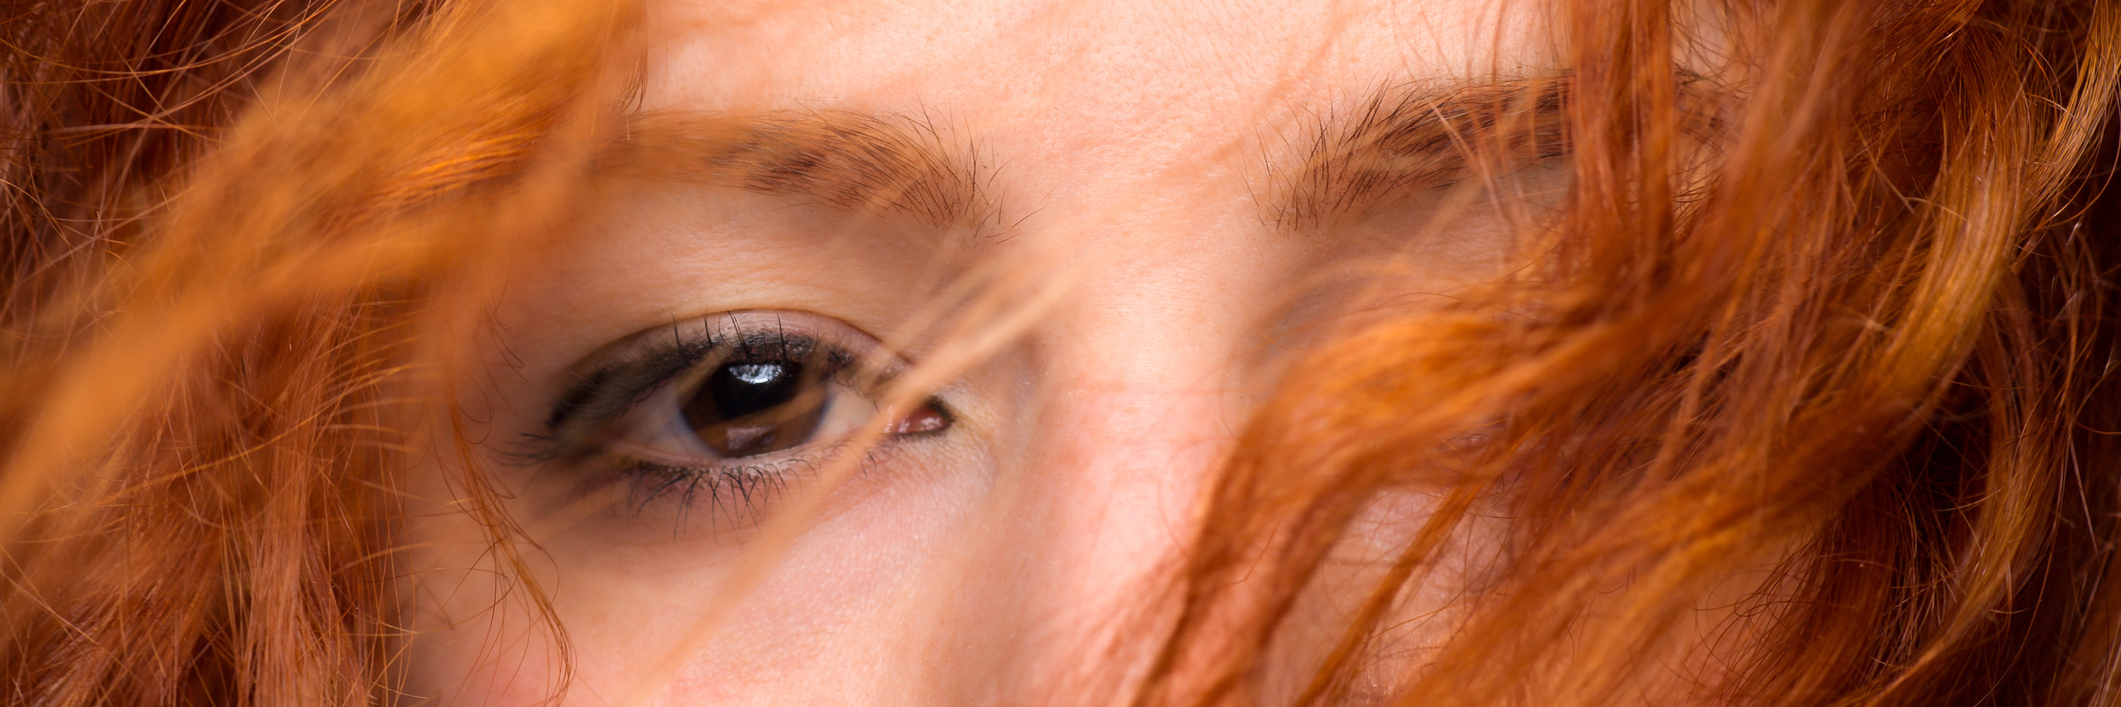 A close-up on a red-headed woman's eyes.